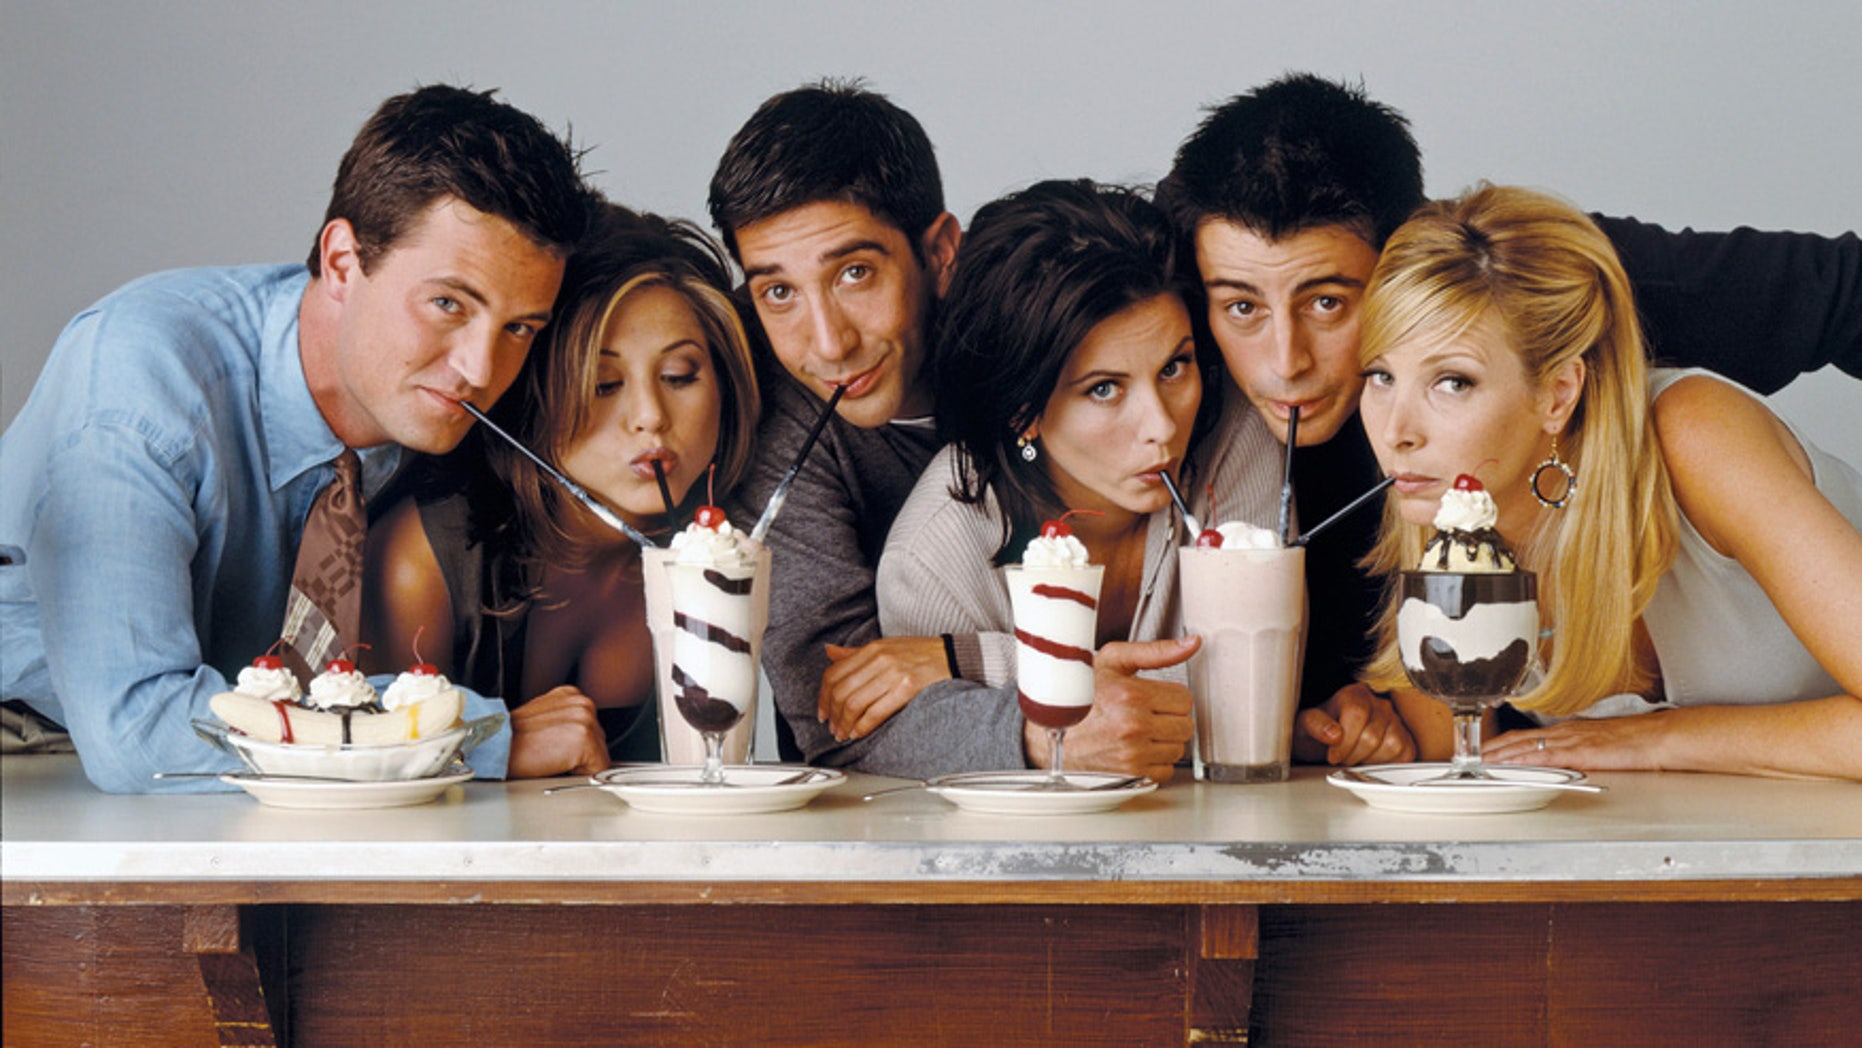 Pictured: (l-r) Matthew Perry as Chandler Bing, Jennifer Aniston as Rachel Green, David Schwimmer as Ross Geller, Courteney Cox as Monica Geller, Matt Le Blanc as Joey Tribbiani, Lisa Kudrow as Phoebe Buffay (Photo by NBC/NBCU Photo Bank via Getty Images)